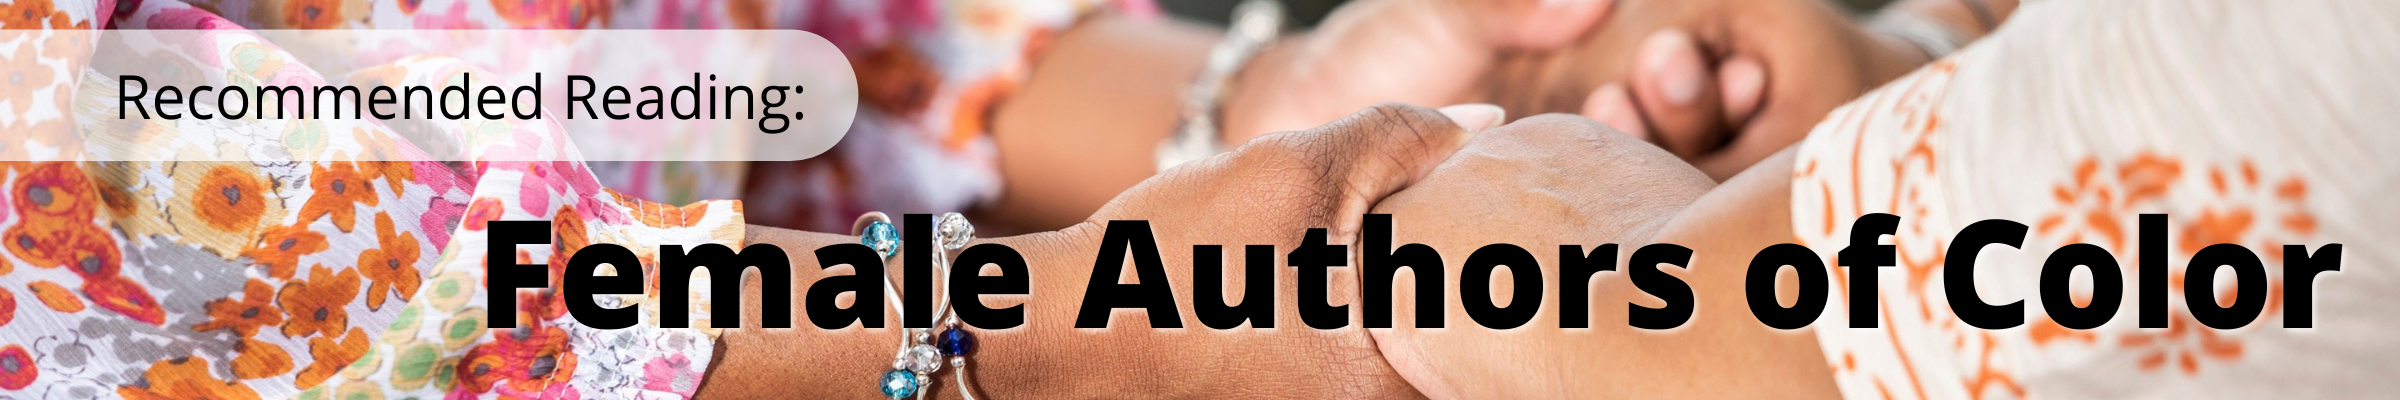 Recommended Reading: Female Authors of Color